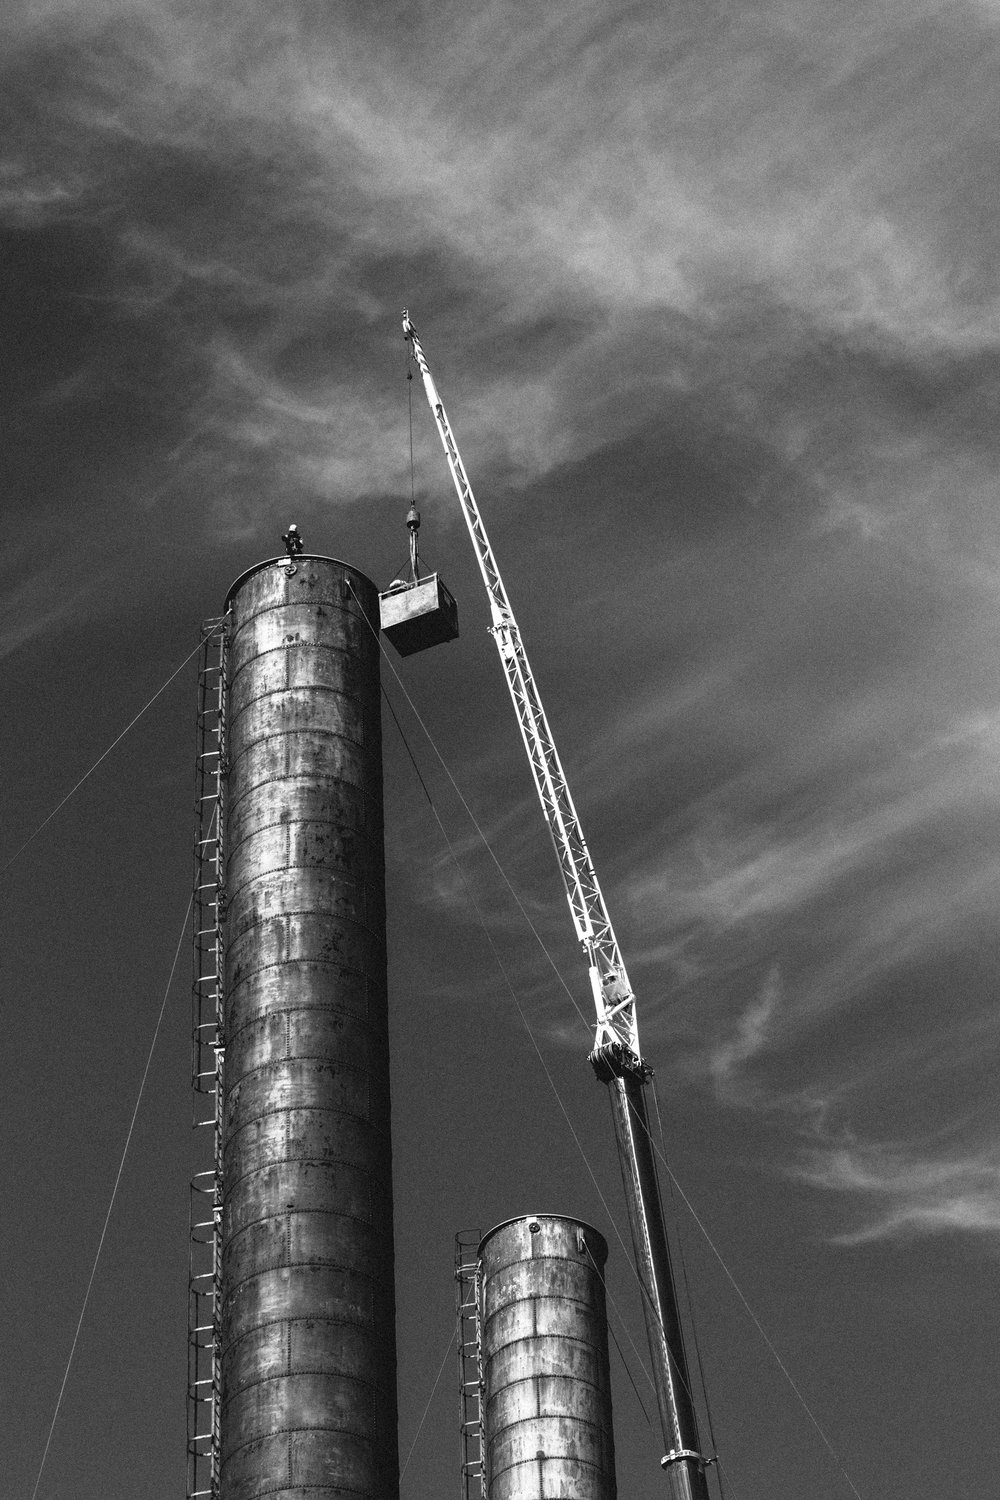 mackintosh_photography_industrial_architecture_10.jpg